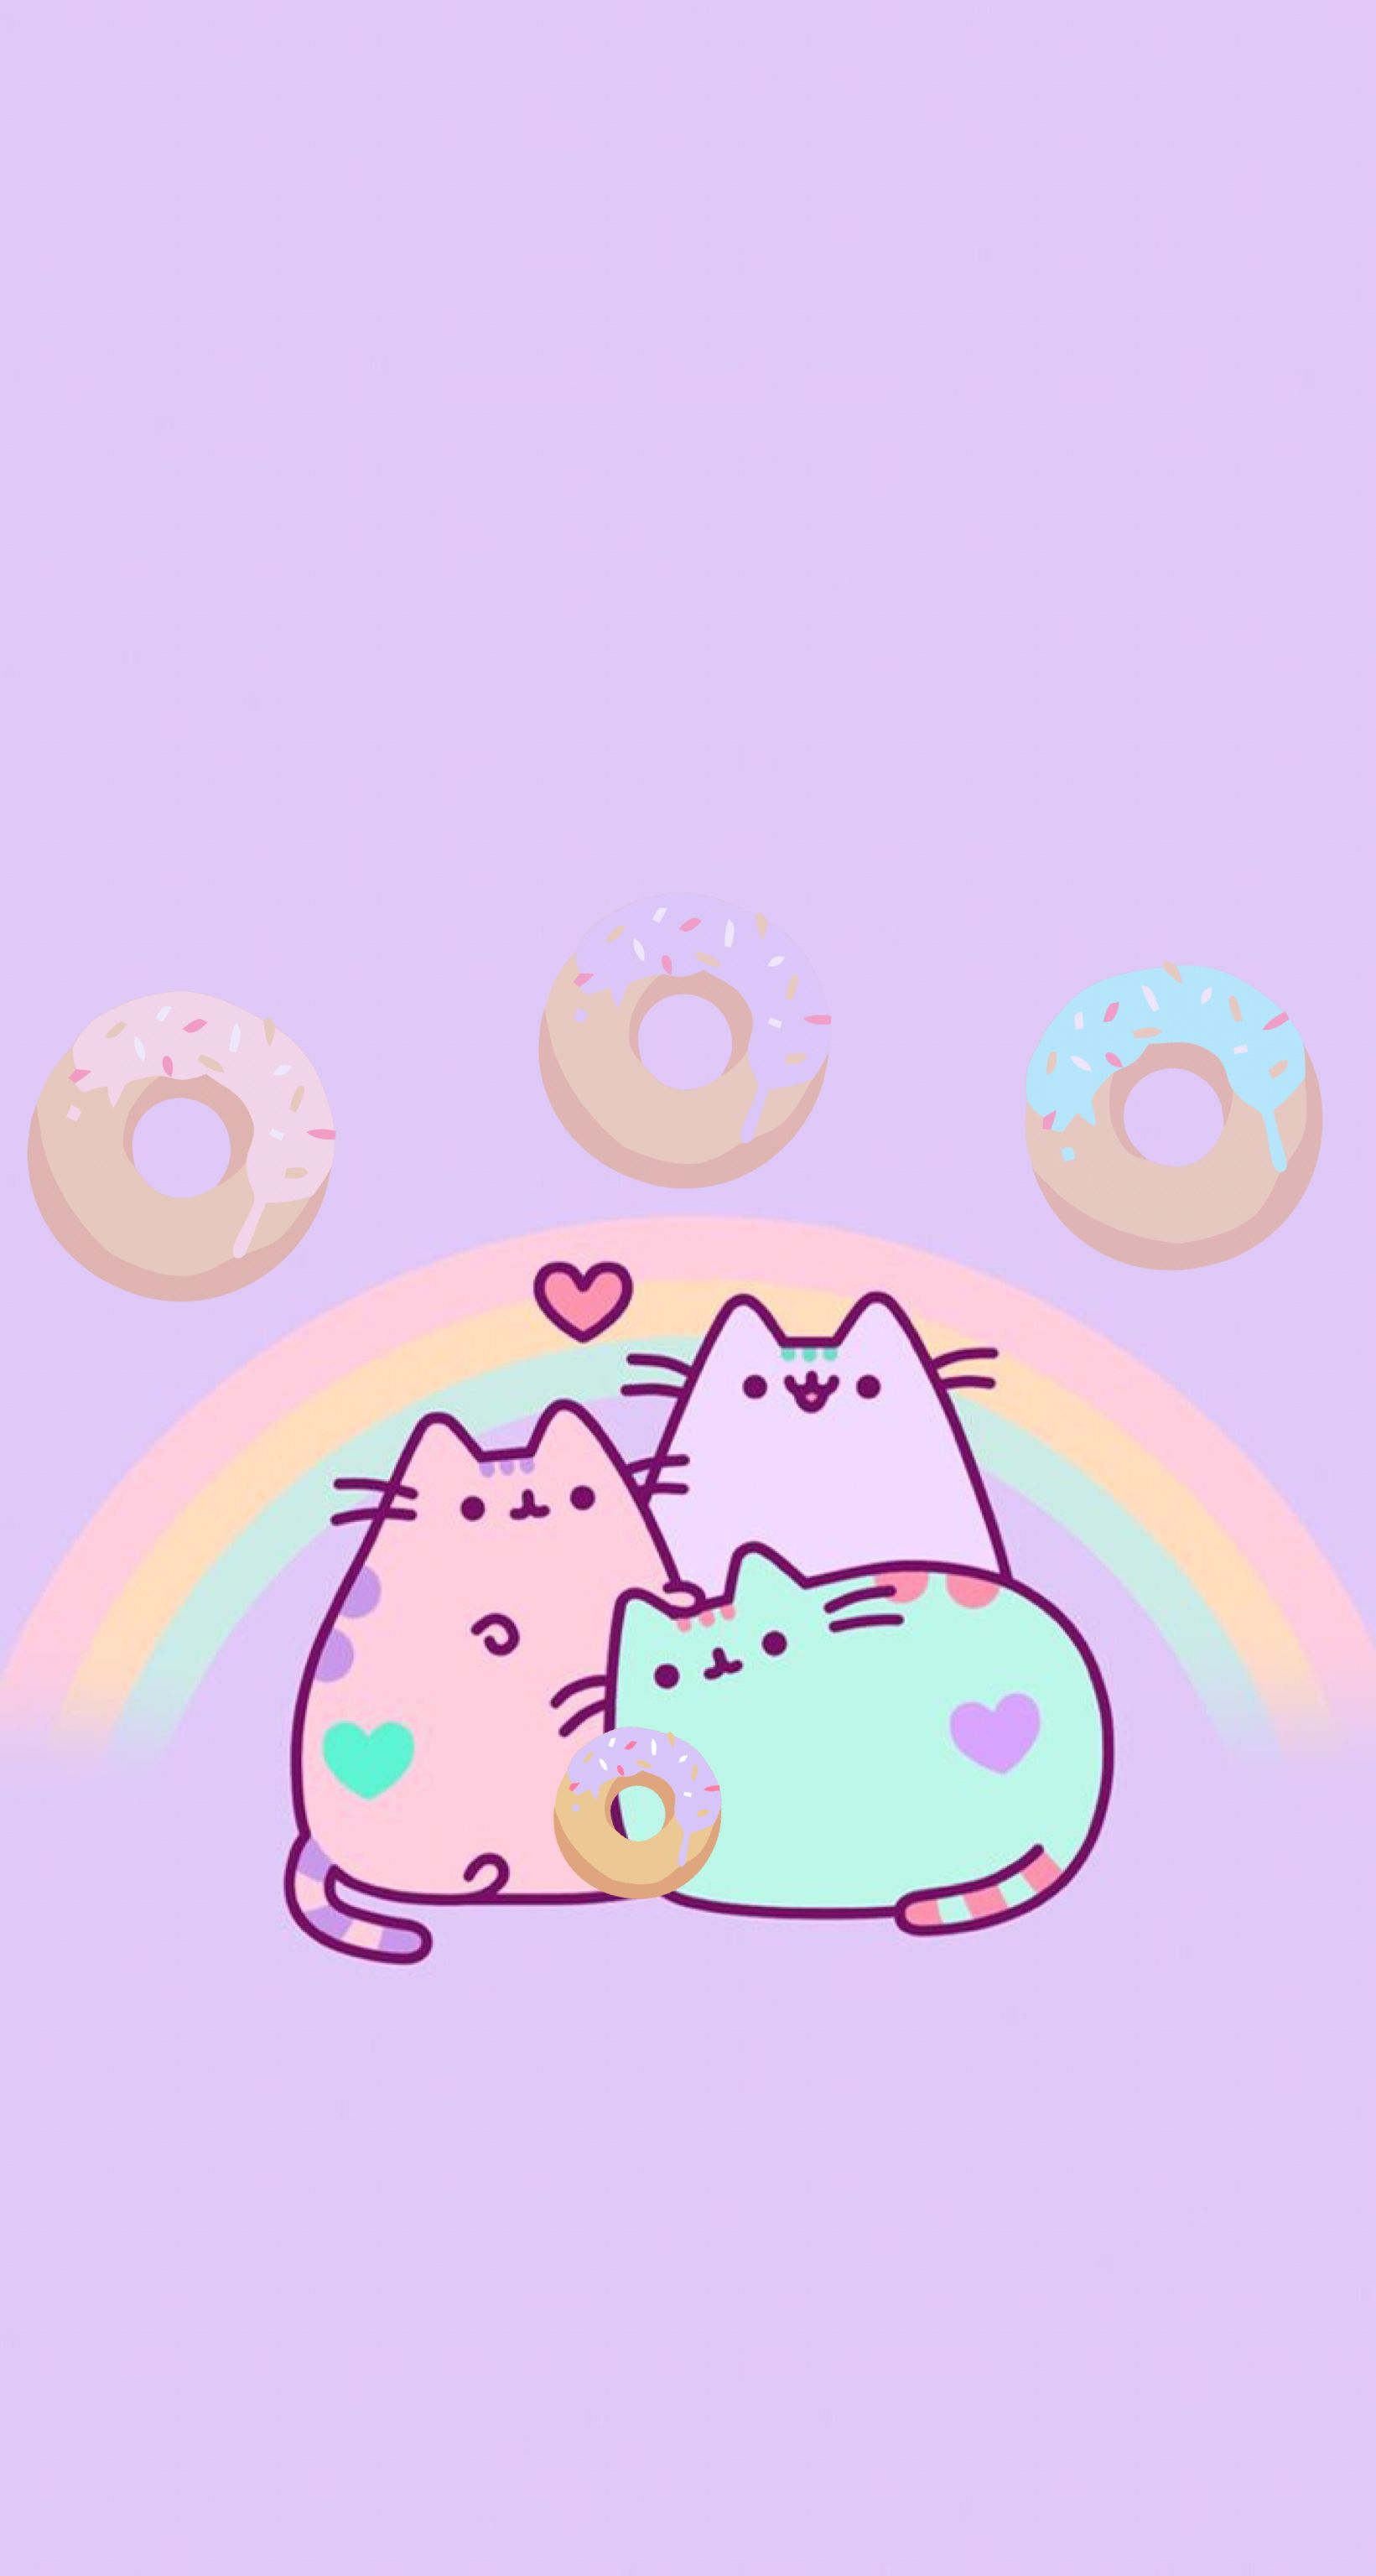 Rainbow Pusheen Wallpapers - Top Free ...